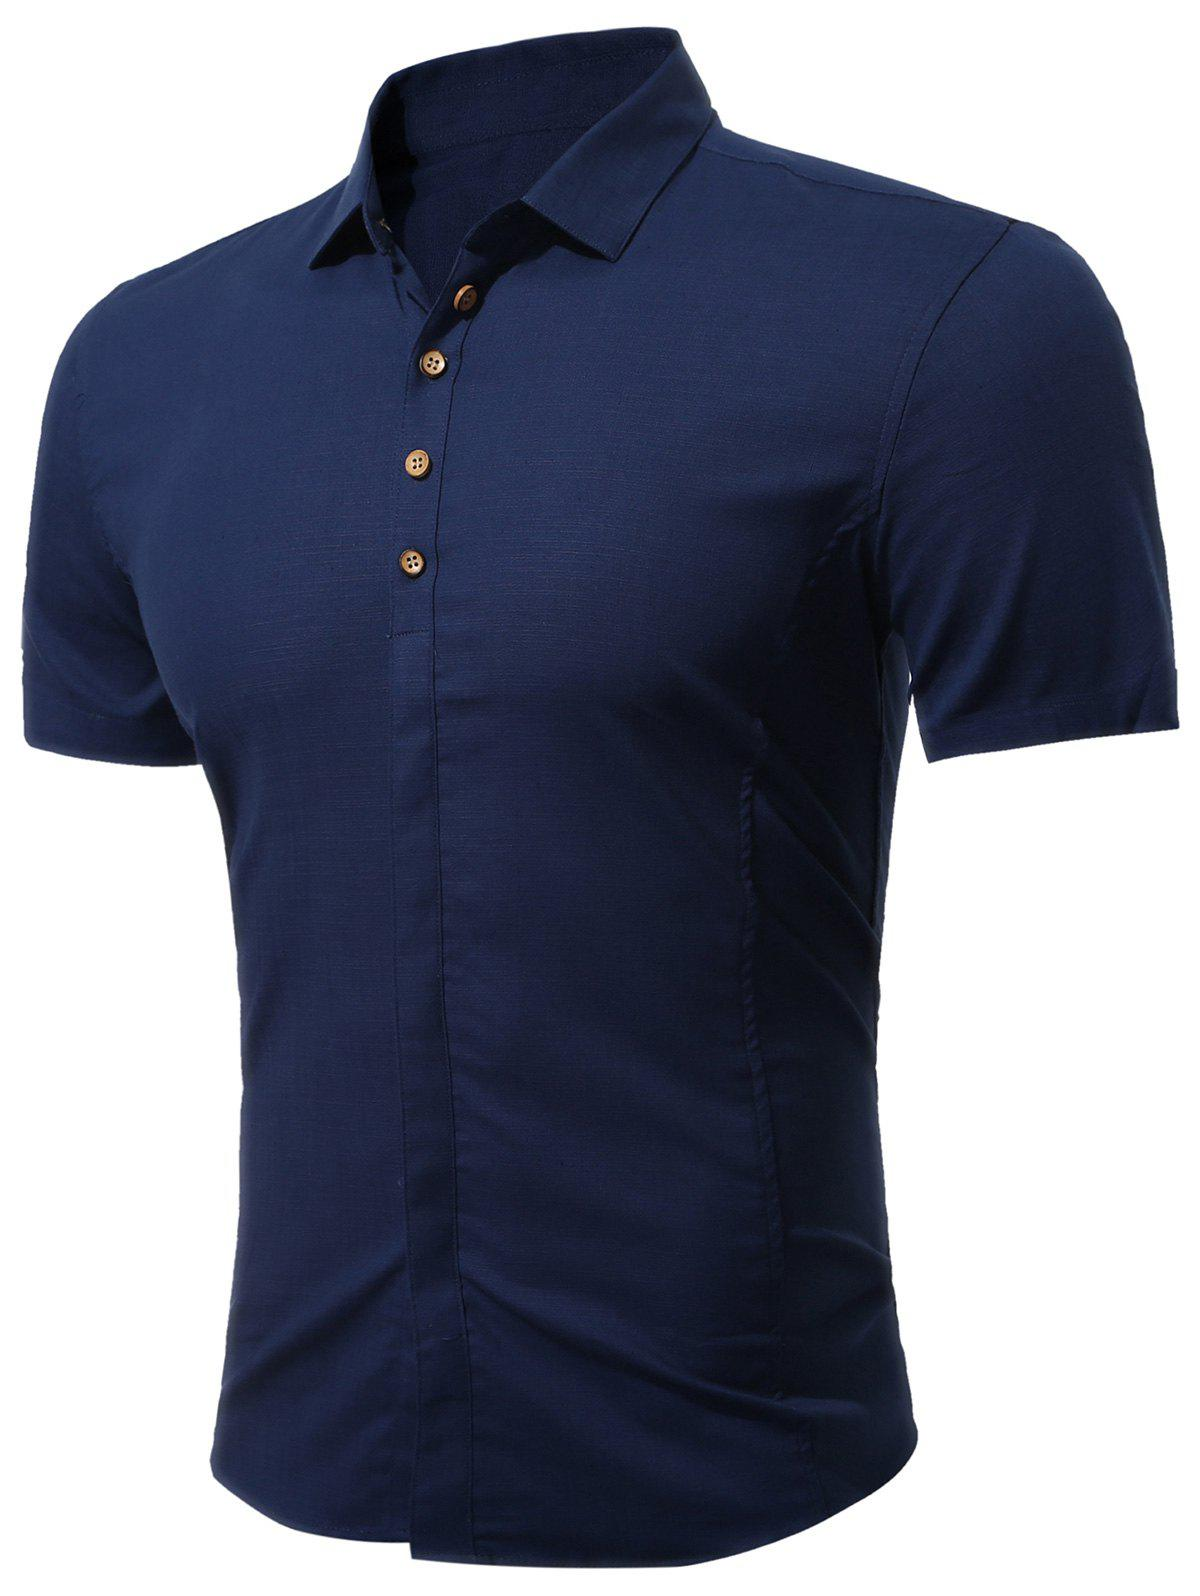 Short Sleeve Multi Botton Up Shirt - DEEP BLUE M